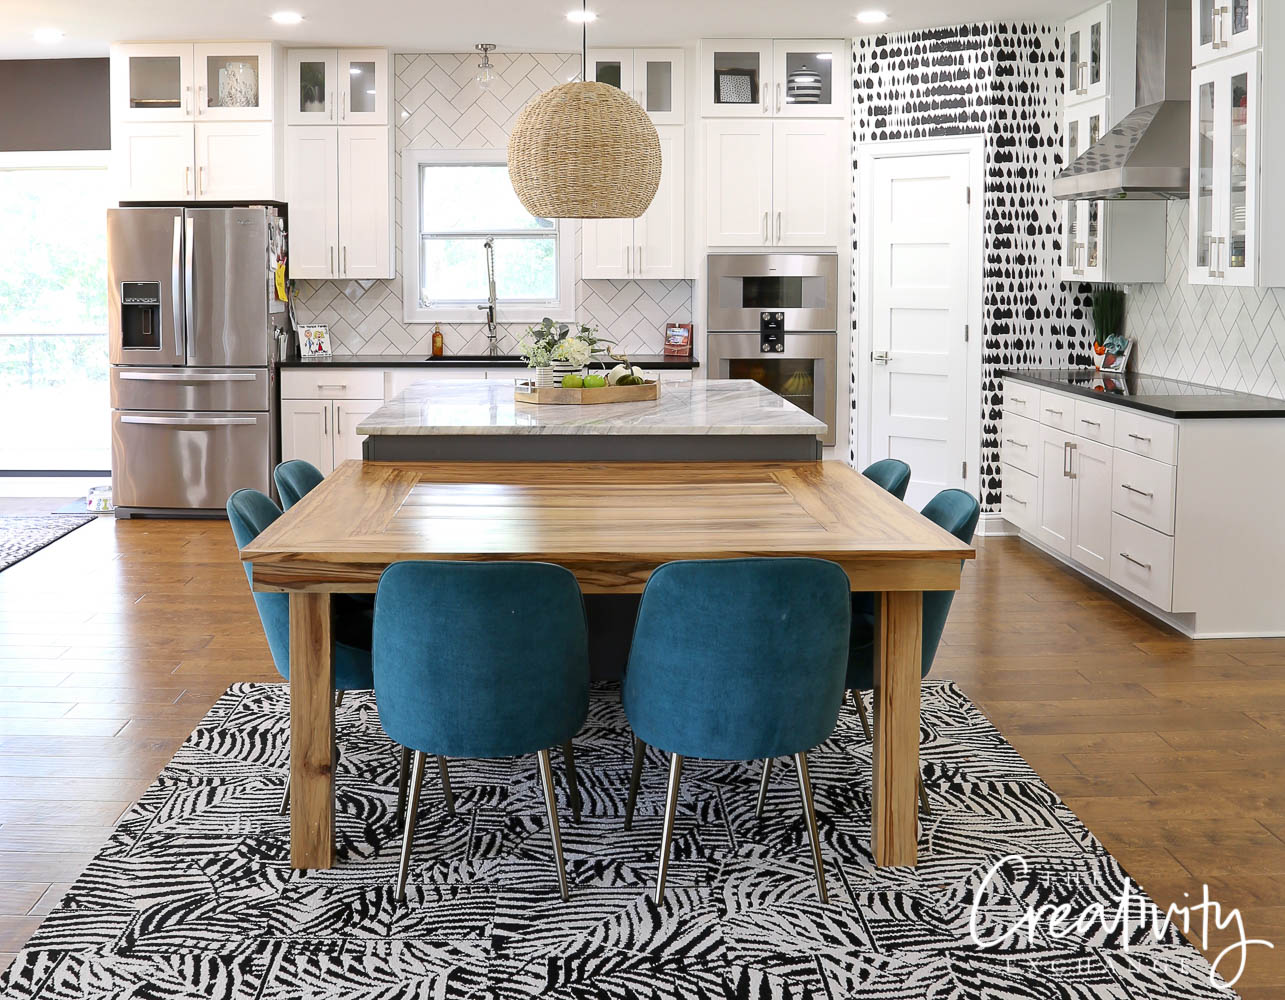 Contrasting kitchen with bold black and white pattern.